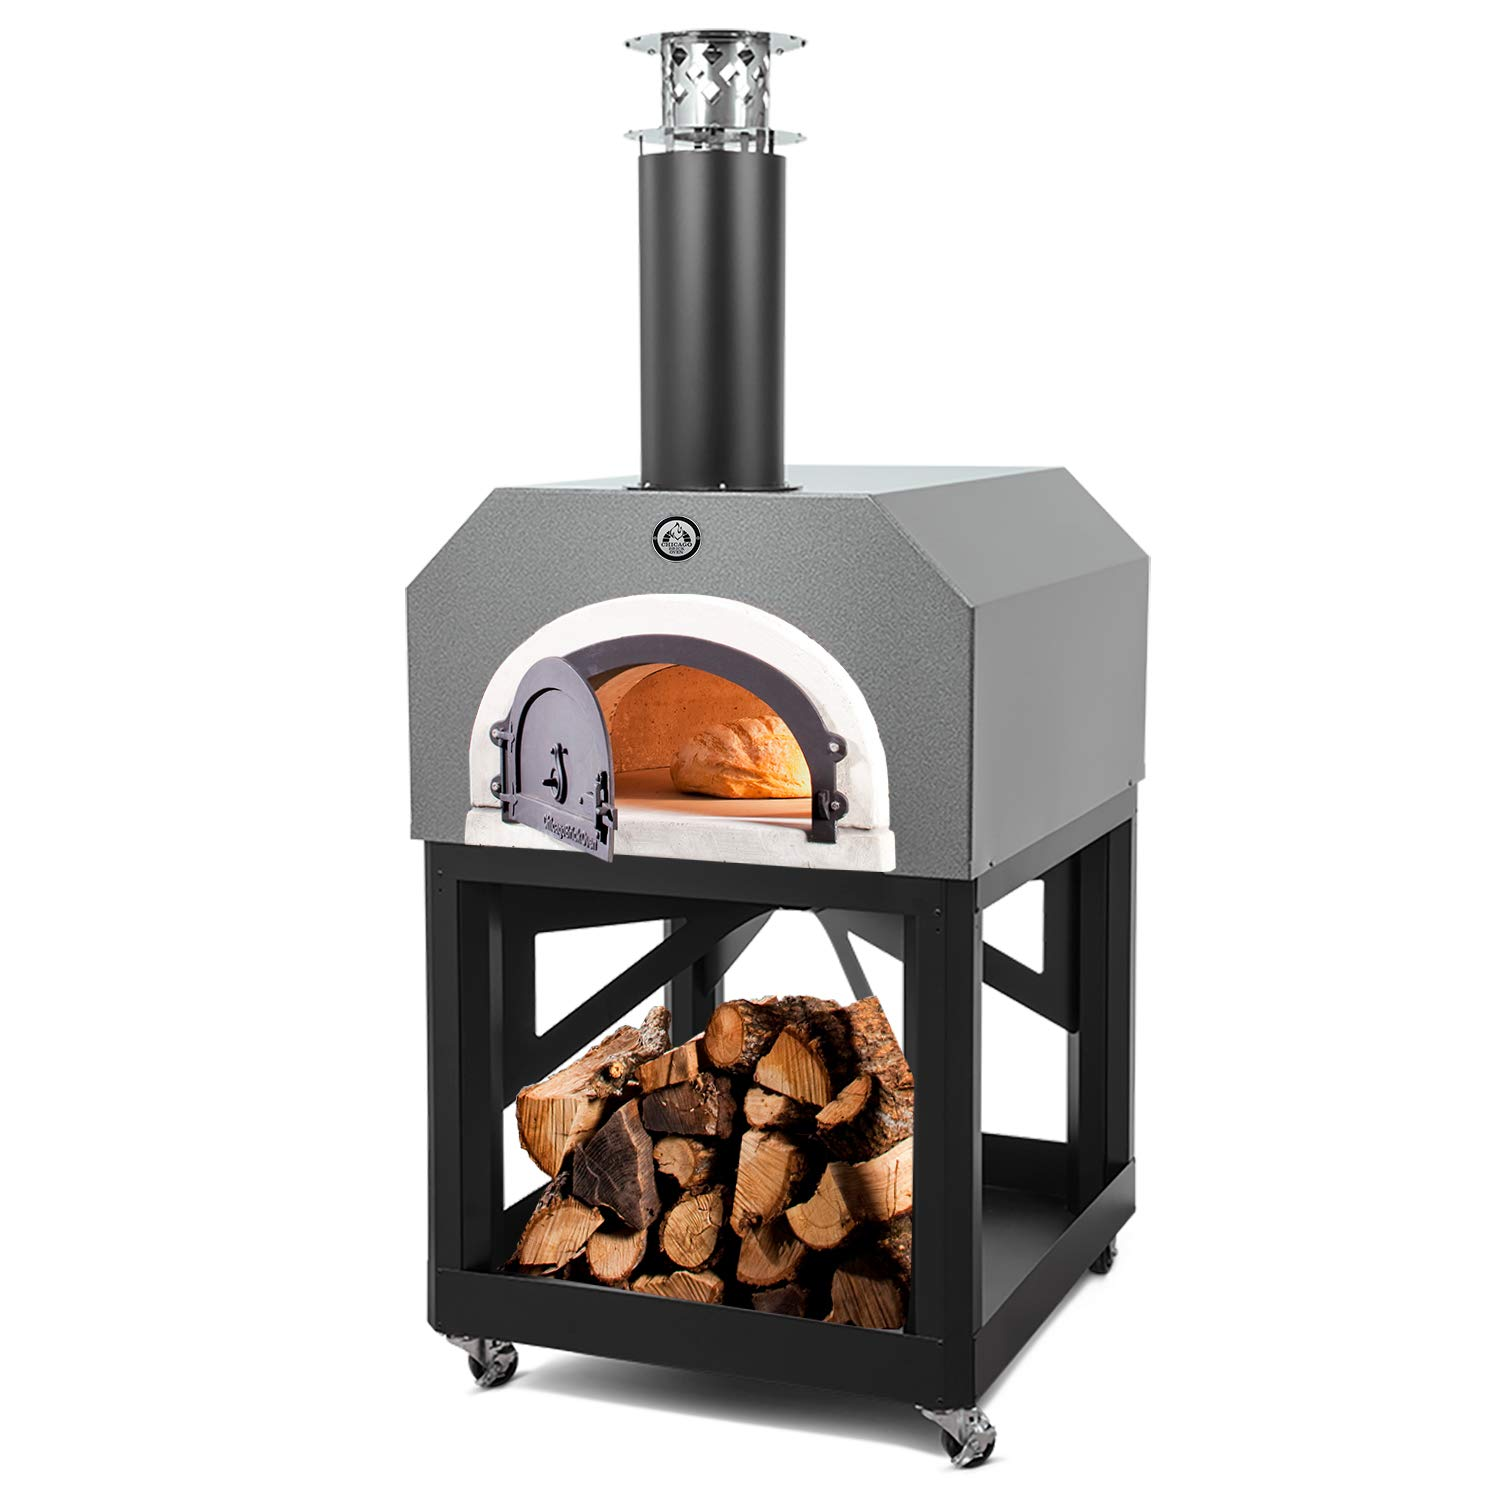 CBO-750 Mobile with Copper Vein Hood Chicago Brick Oven Wood-Burning Mobile Outdoor Pizza Oven